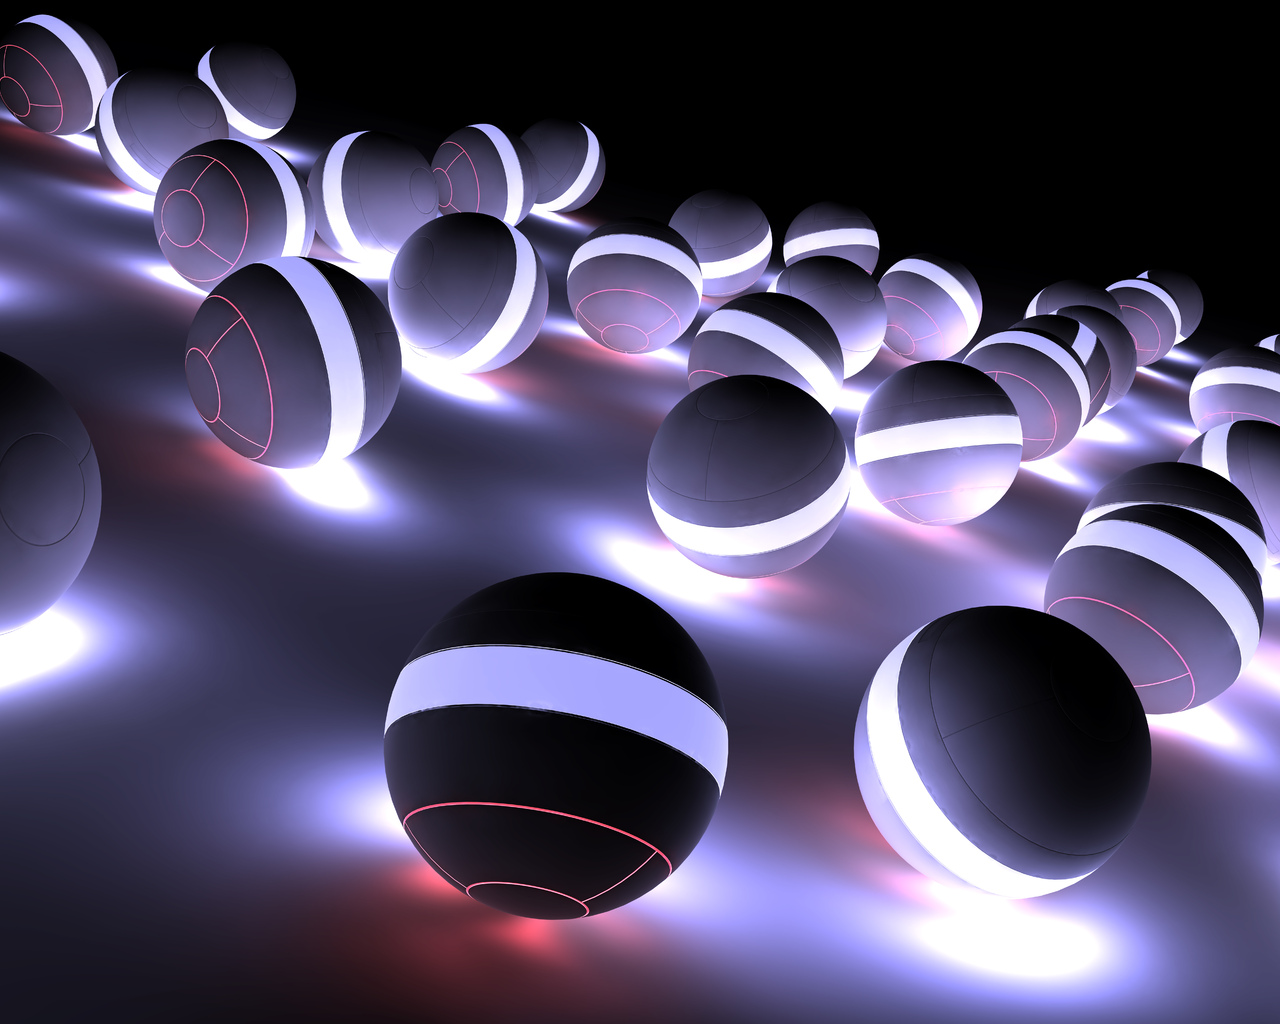 3D Abstract Wallpapers 1280x1024